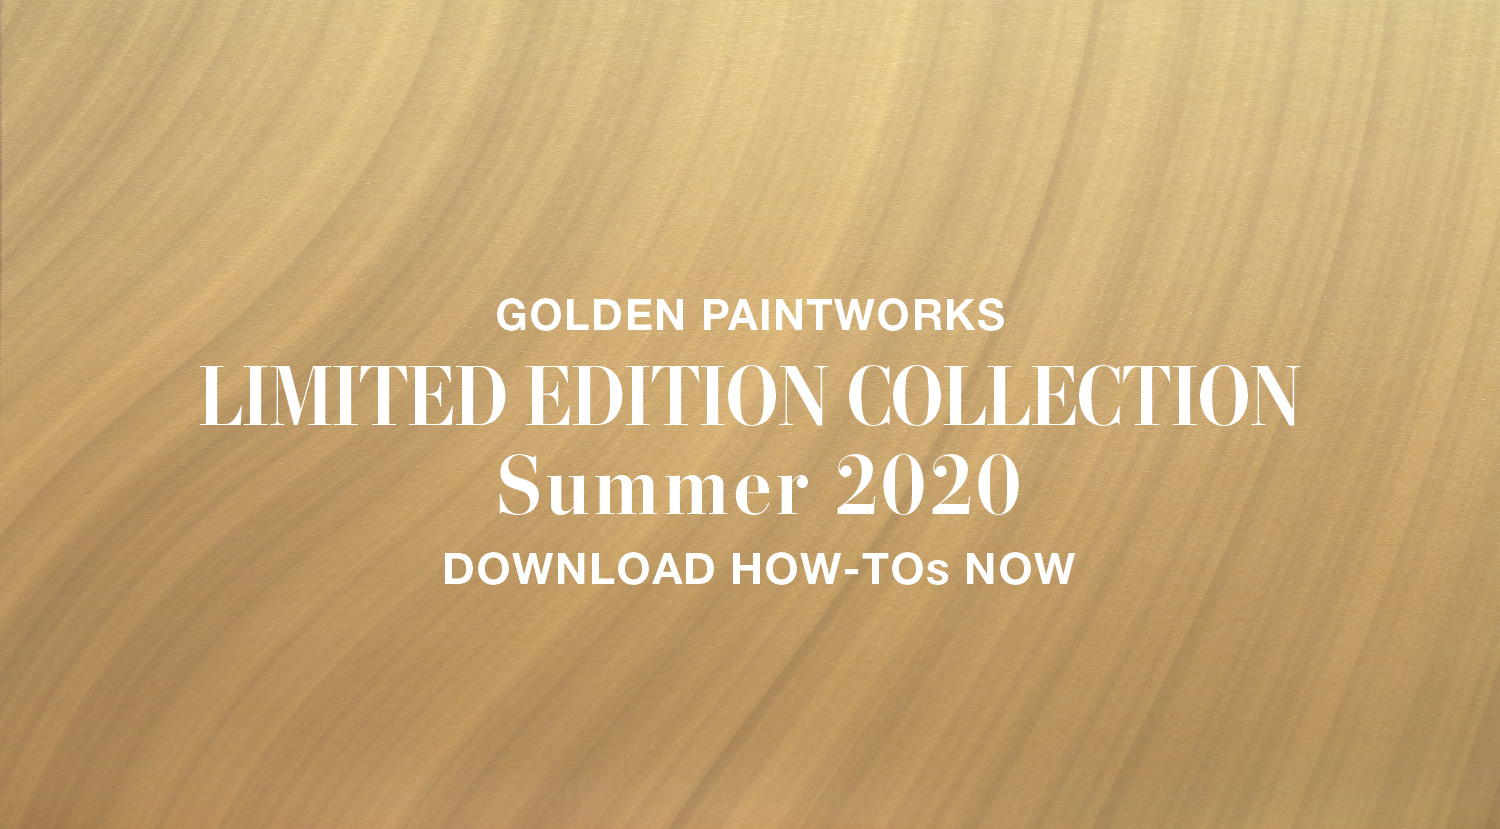 GPW Summer 2020 Limited Edition Collection